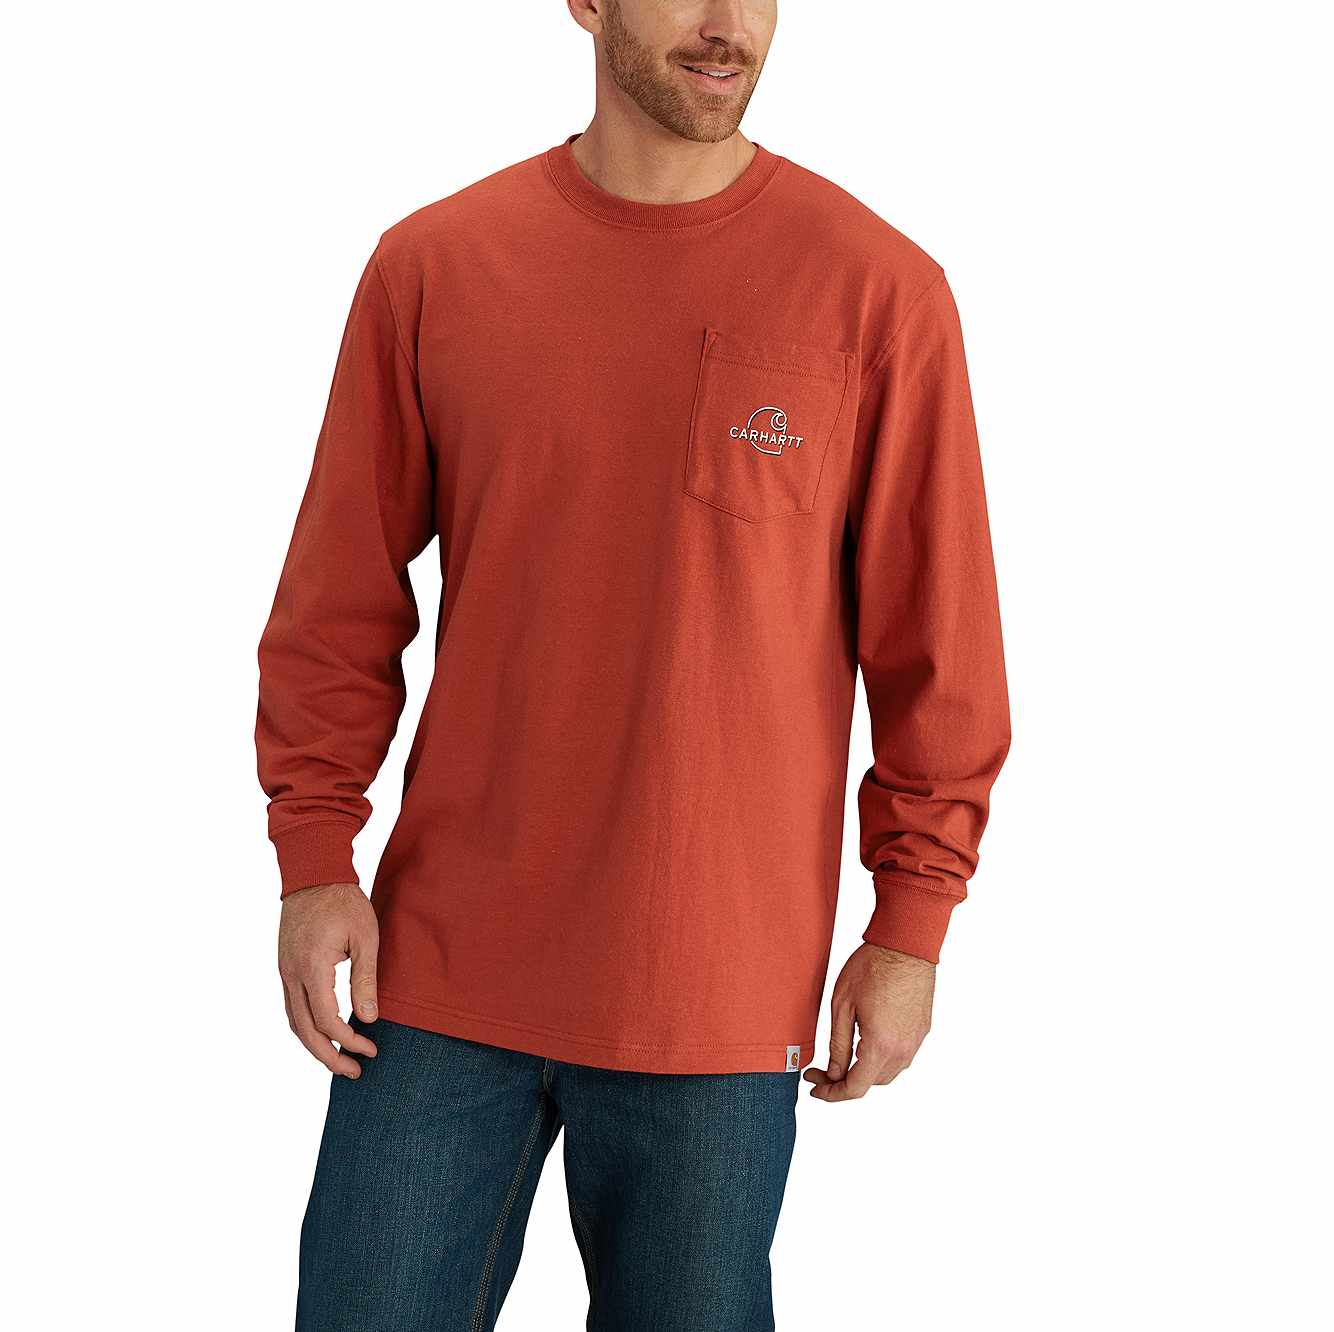 Picture of Workwear Graphic Carhartt Patch Long-Sleeve T-Shirt in Chili